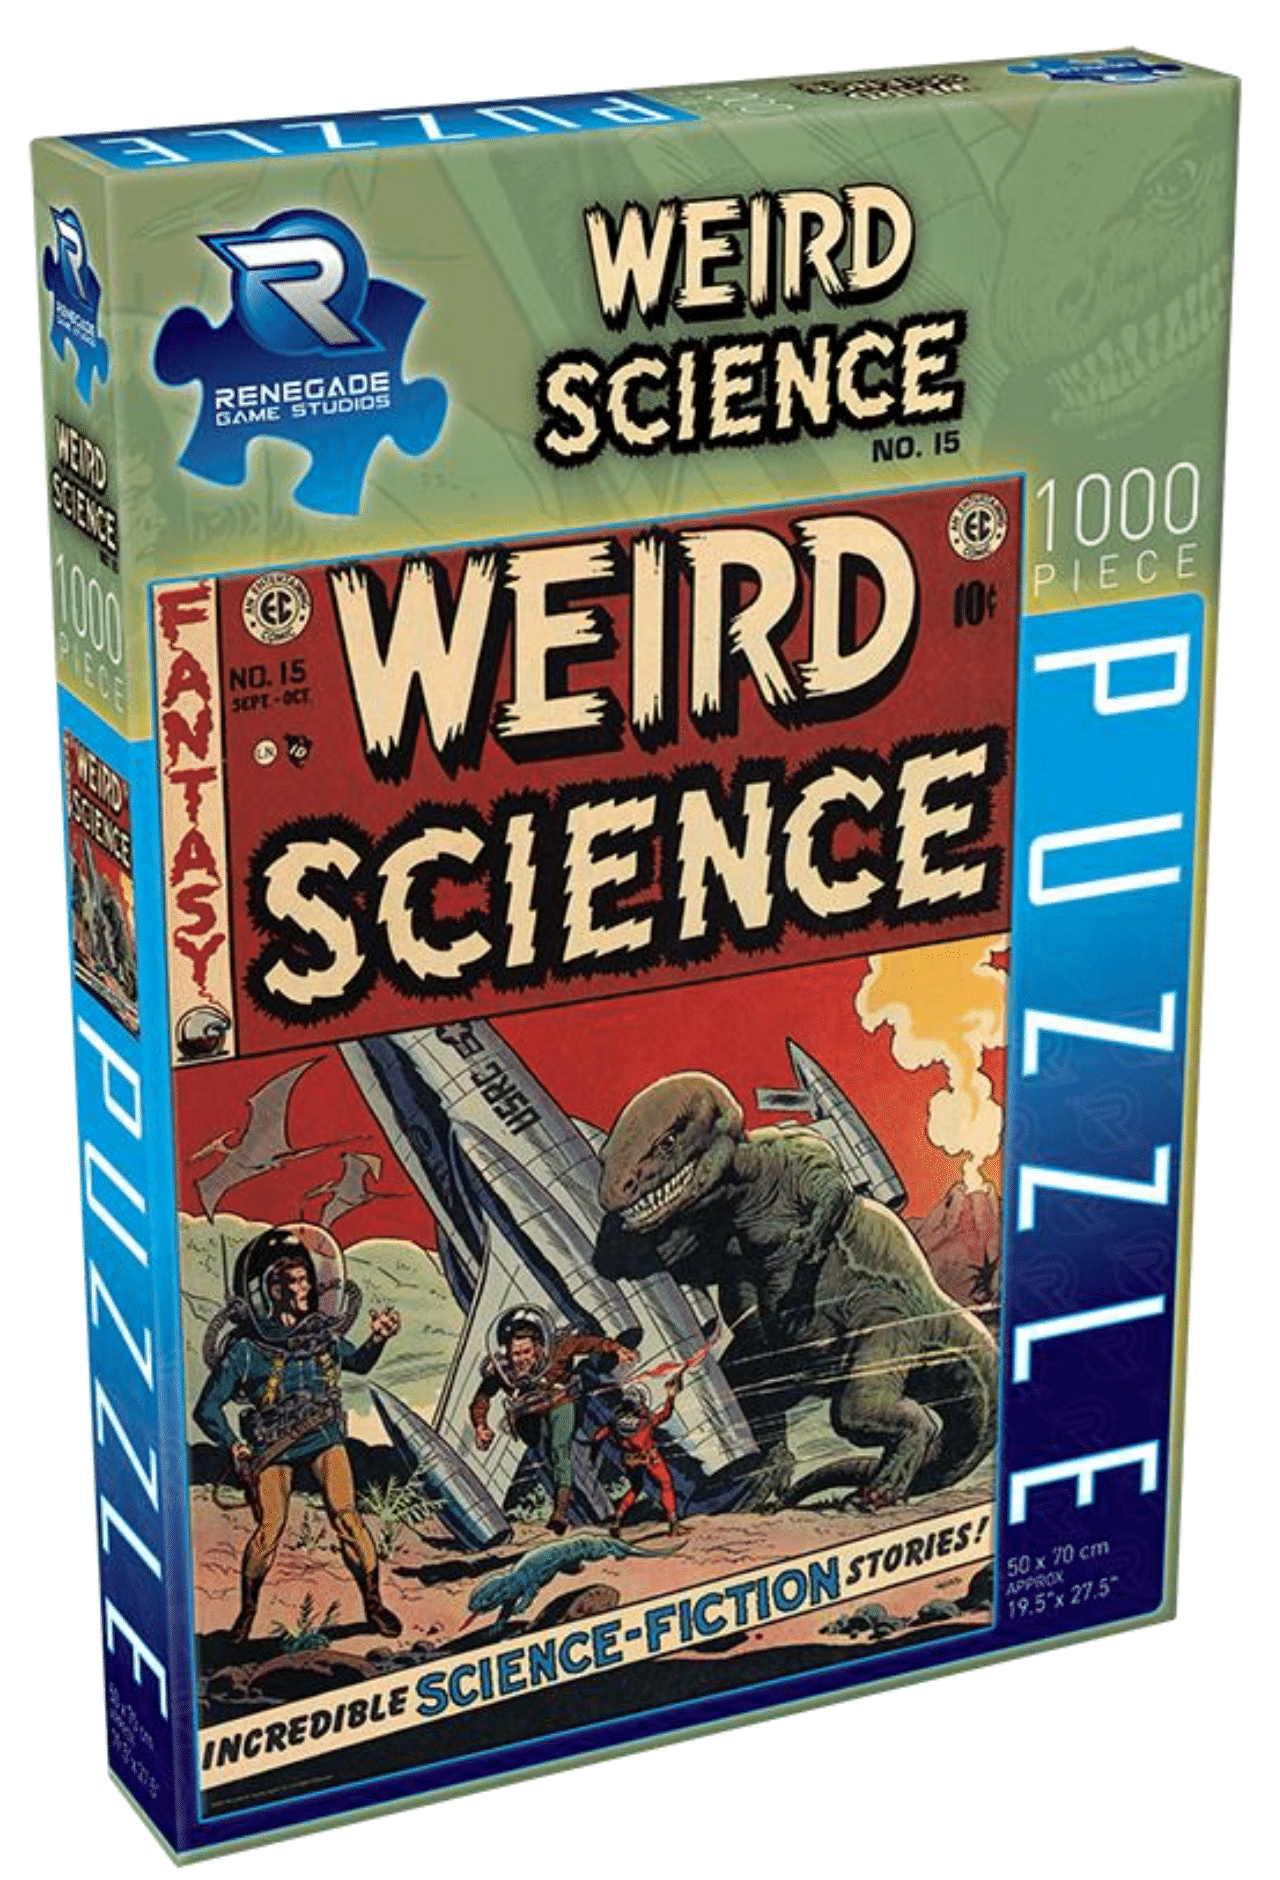 EC Comics Weird Science-Fantasy No. 15 (1000 Piece Puzzle)